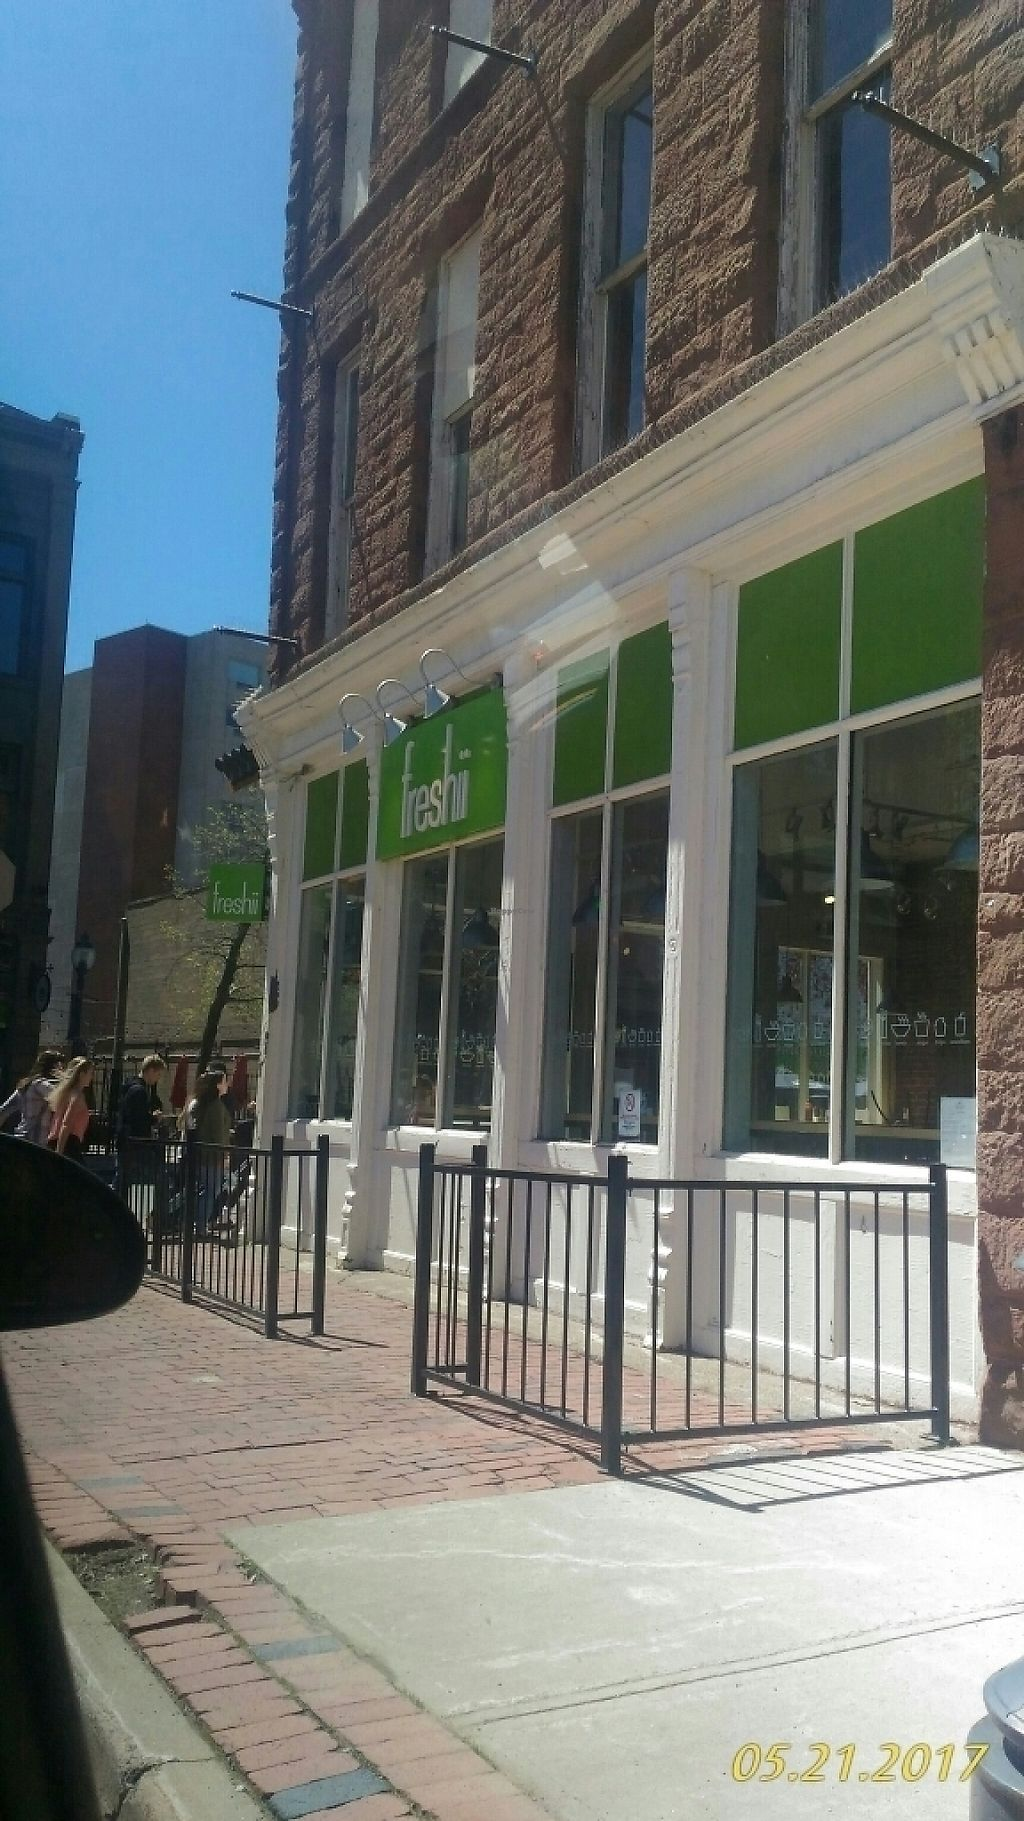 """Photo of freshii  by <a href=""""/members/profile/QuothTheRaven"""">QuothTheRaven</a> <br/>outside <br/> May 21, 2017  - <a href='/contact/abuse/image/51350/261063'>Report</a>"""